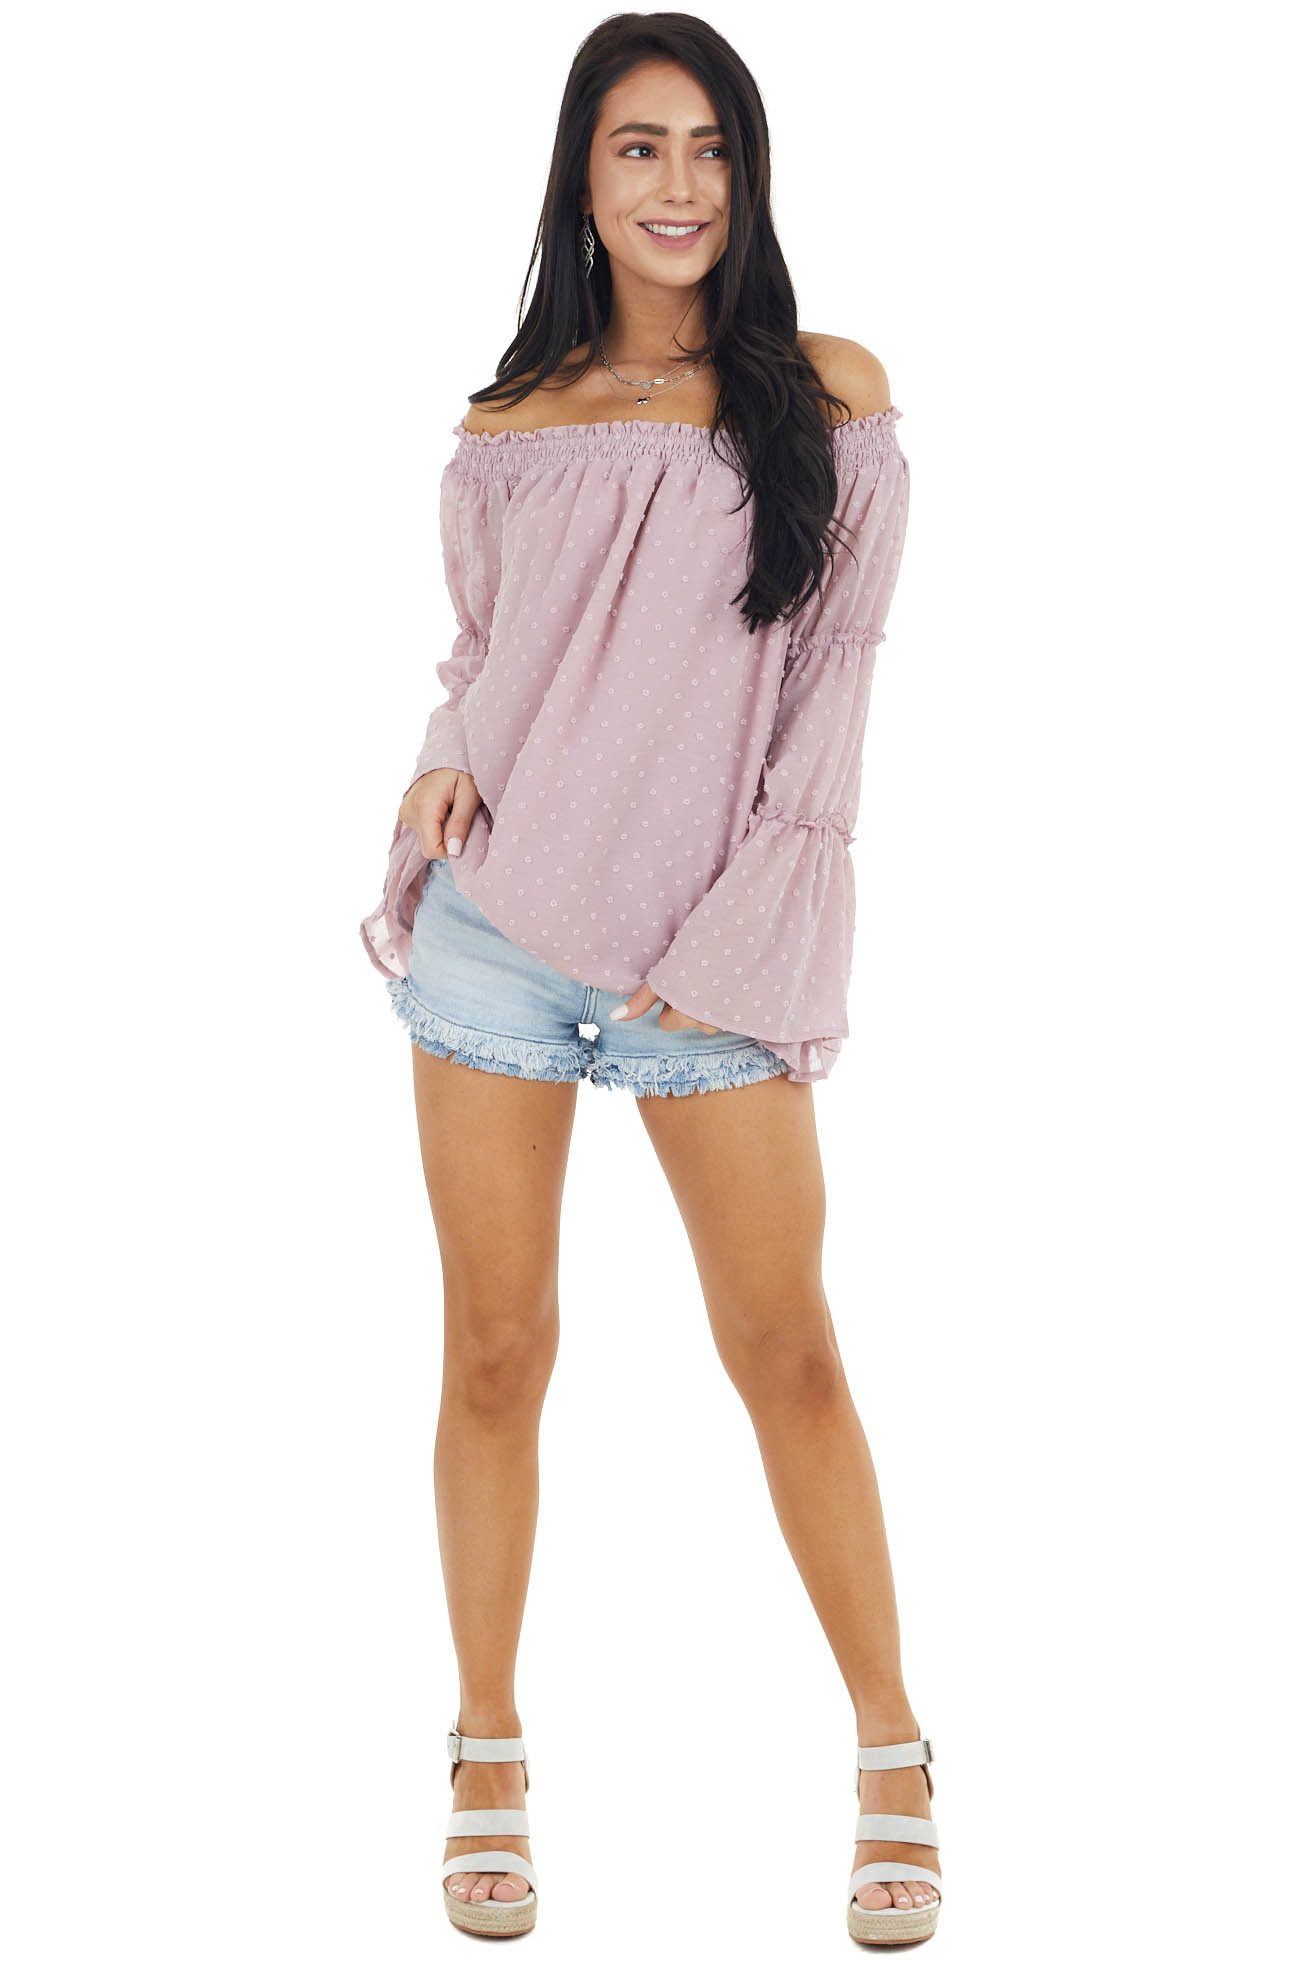 Dusty Rose Swiss Dot Off The Shoulder Top with Bell Sleeves